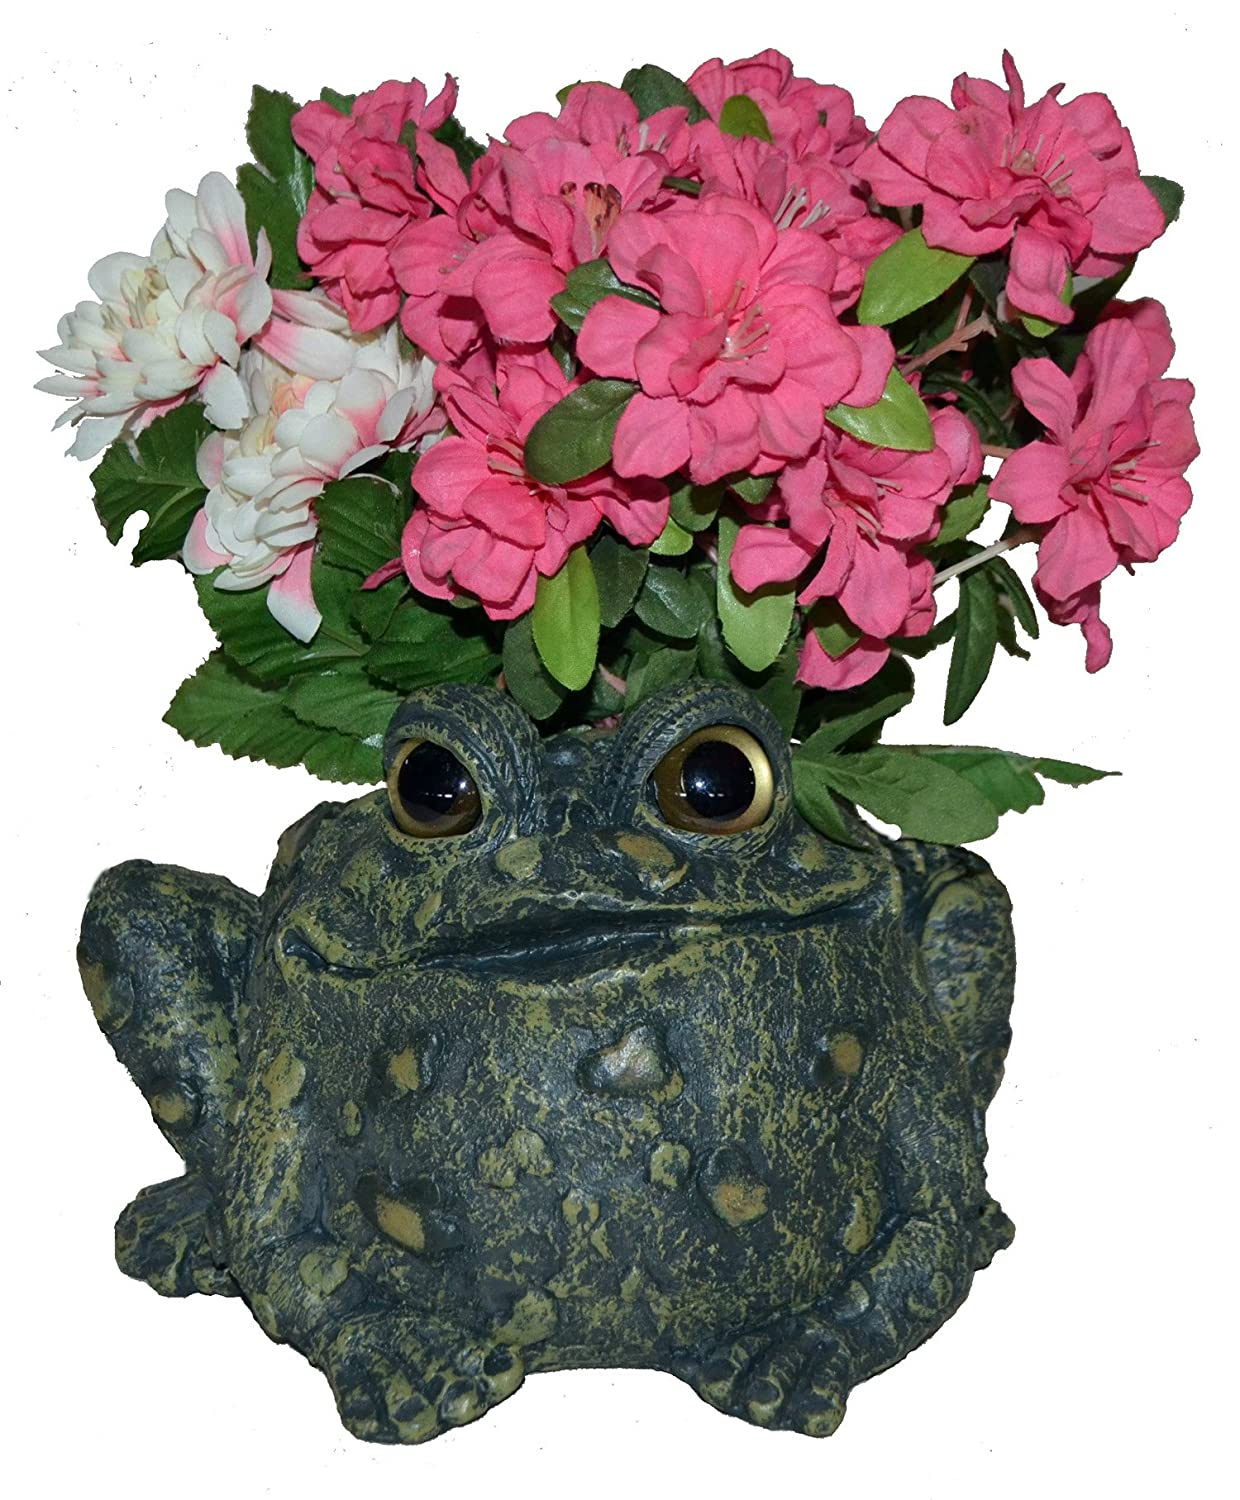 Toad Hollow HomeStyles Large Toad Planter 7 H Holds 4 W Pot, Natural Green